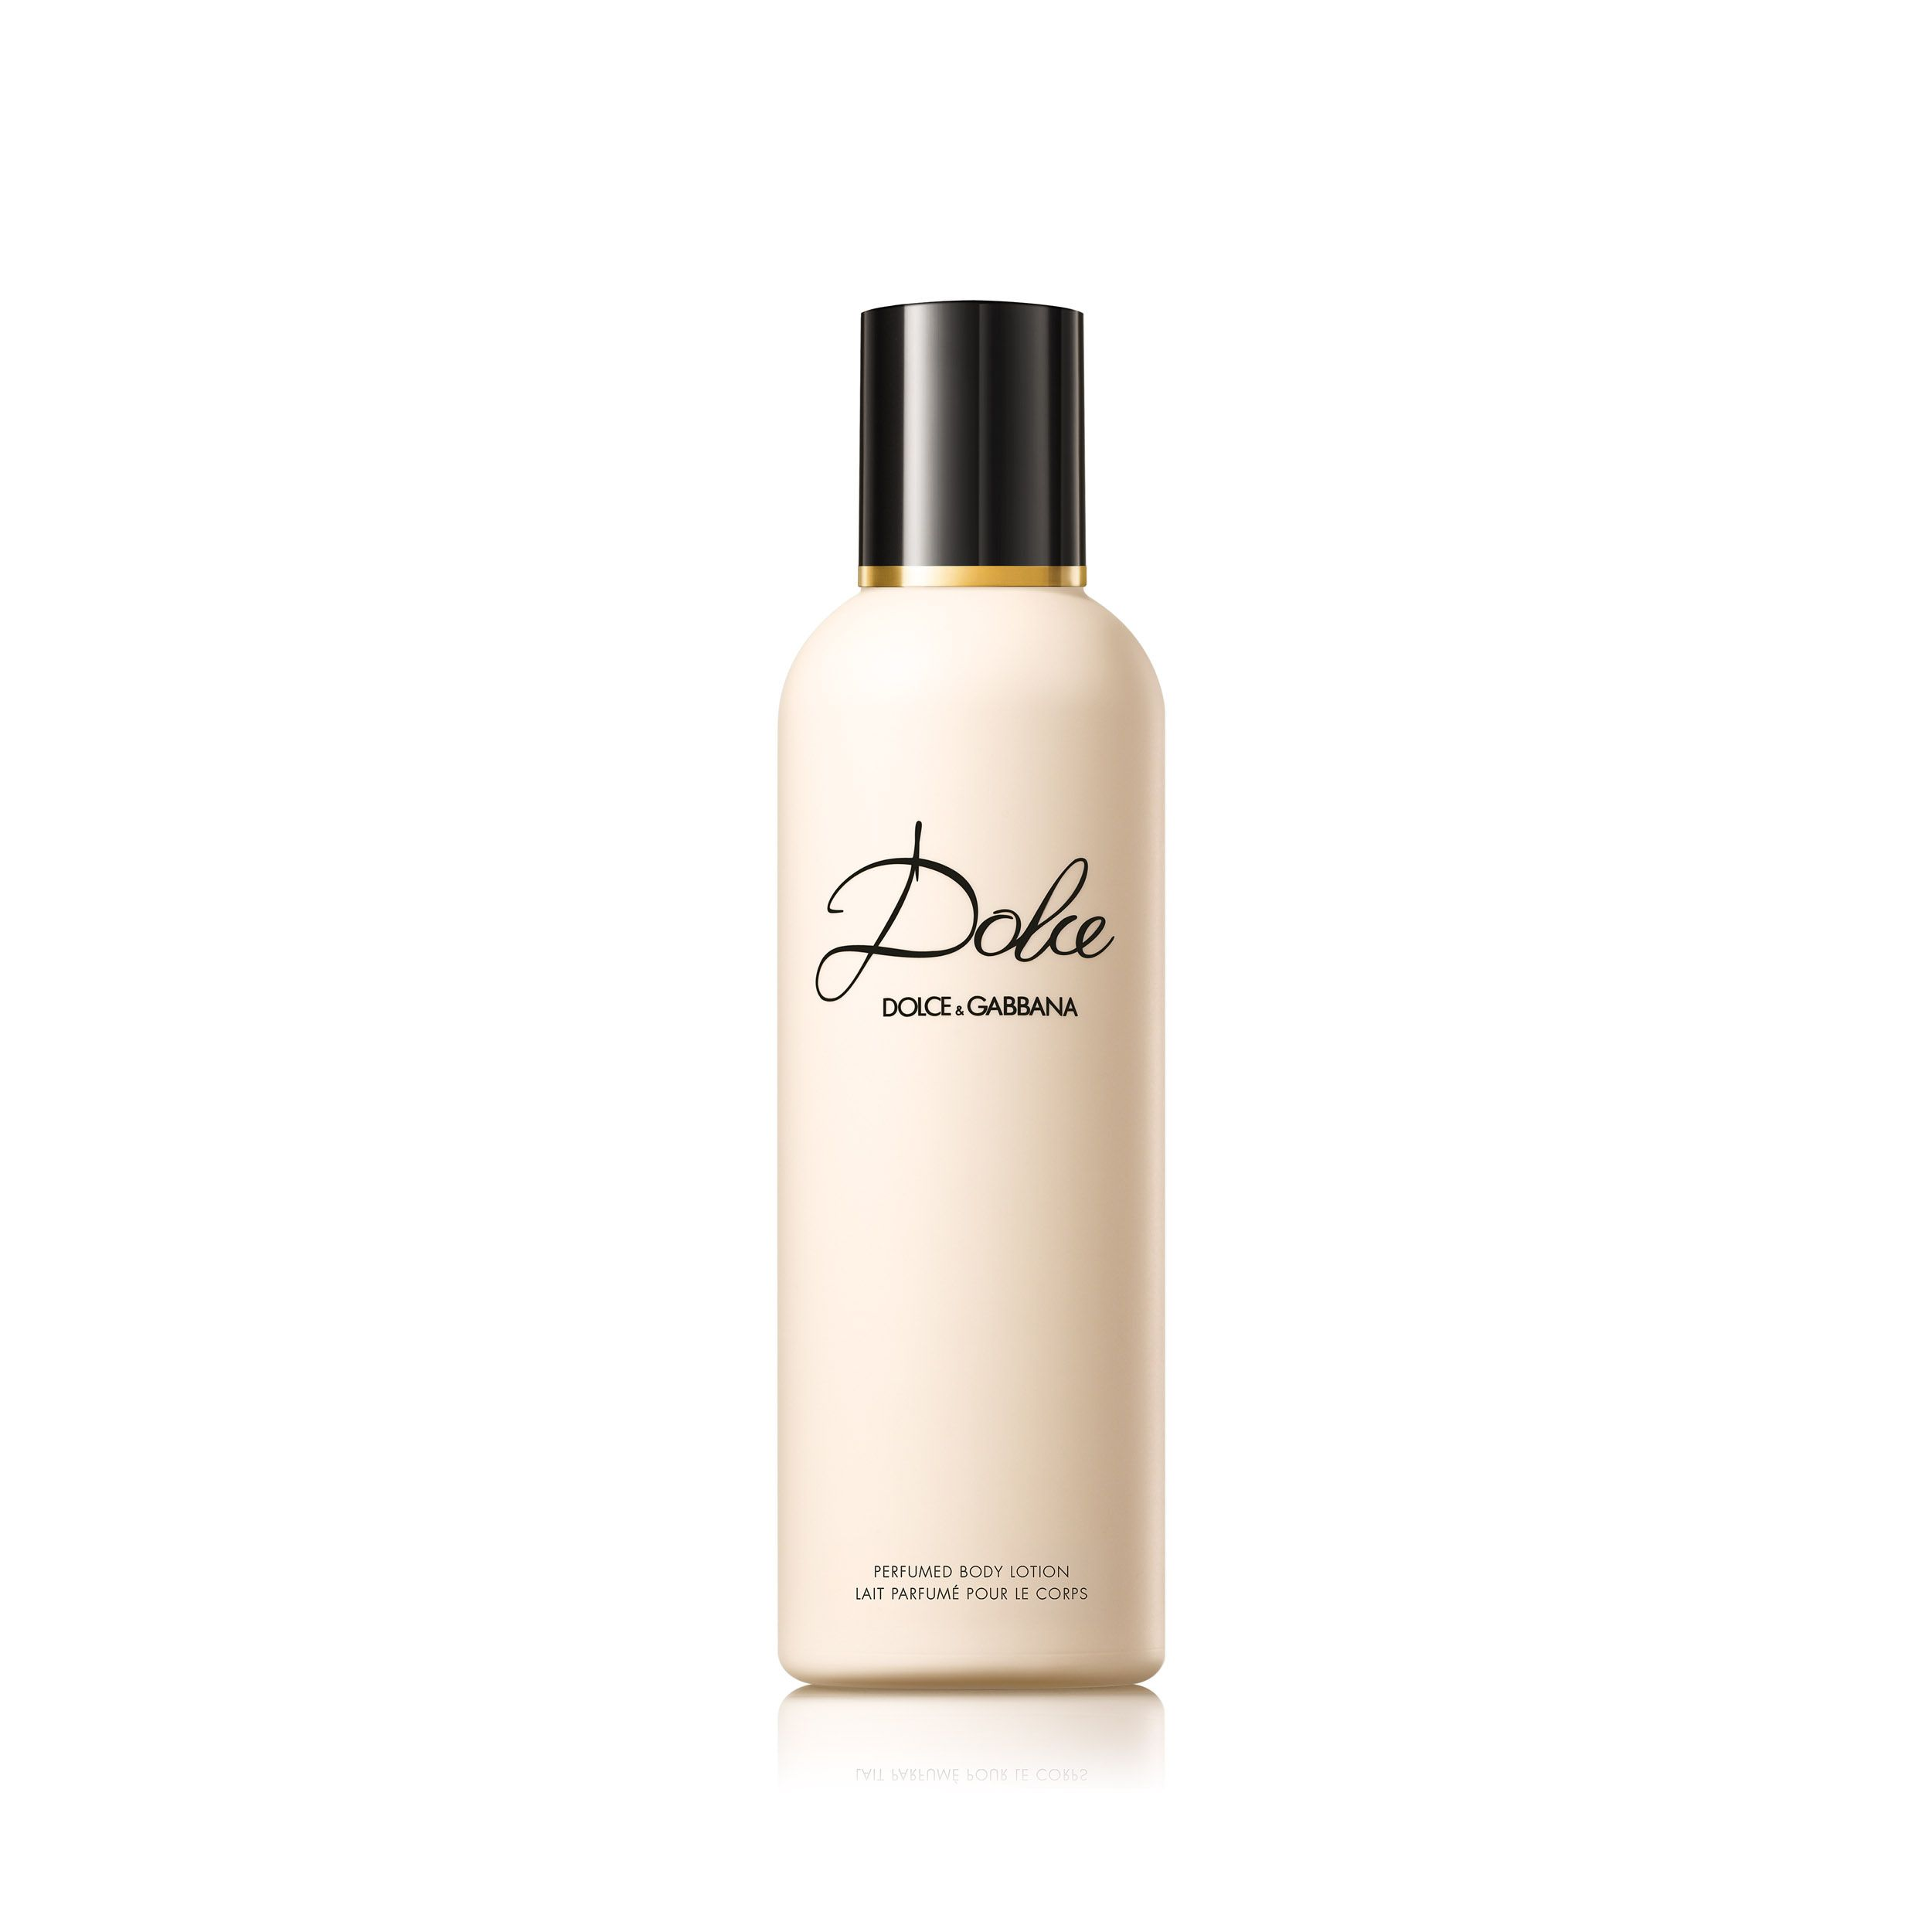 Dolce Body Lotion 200ml